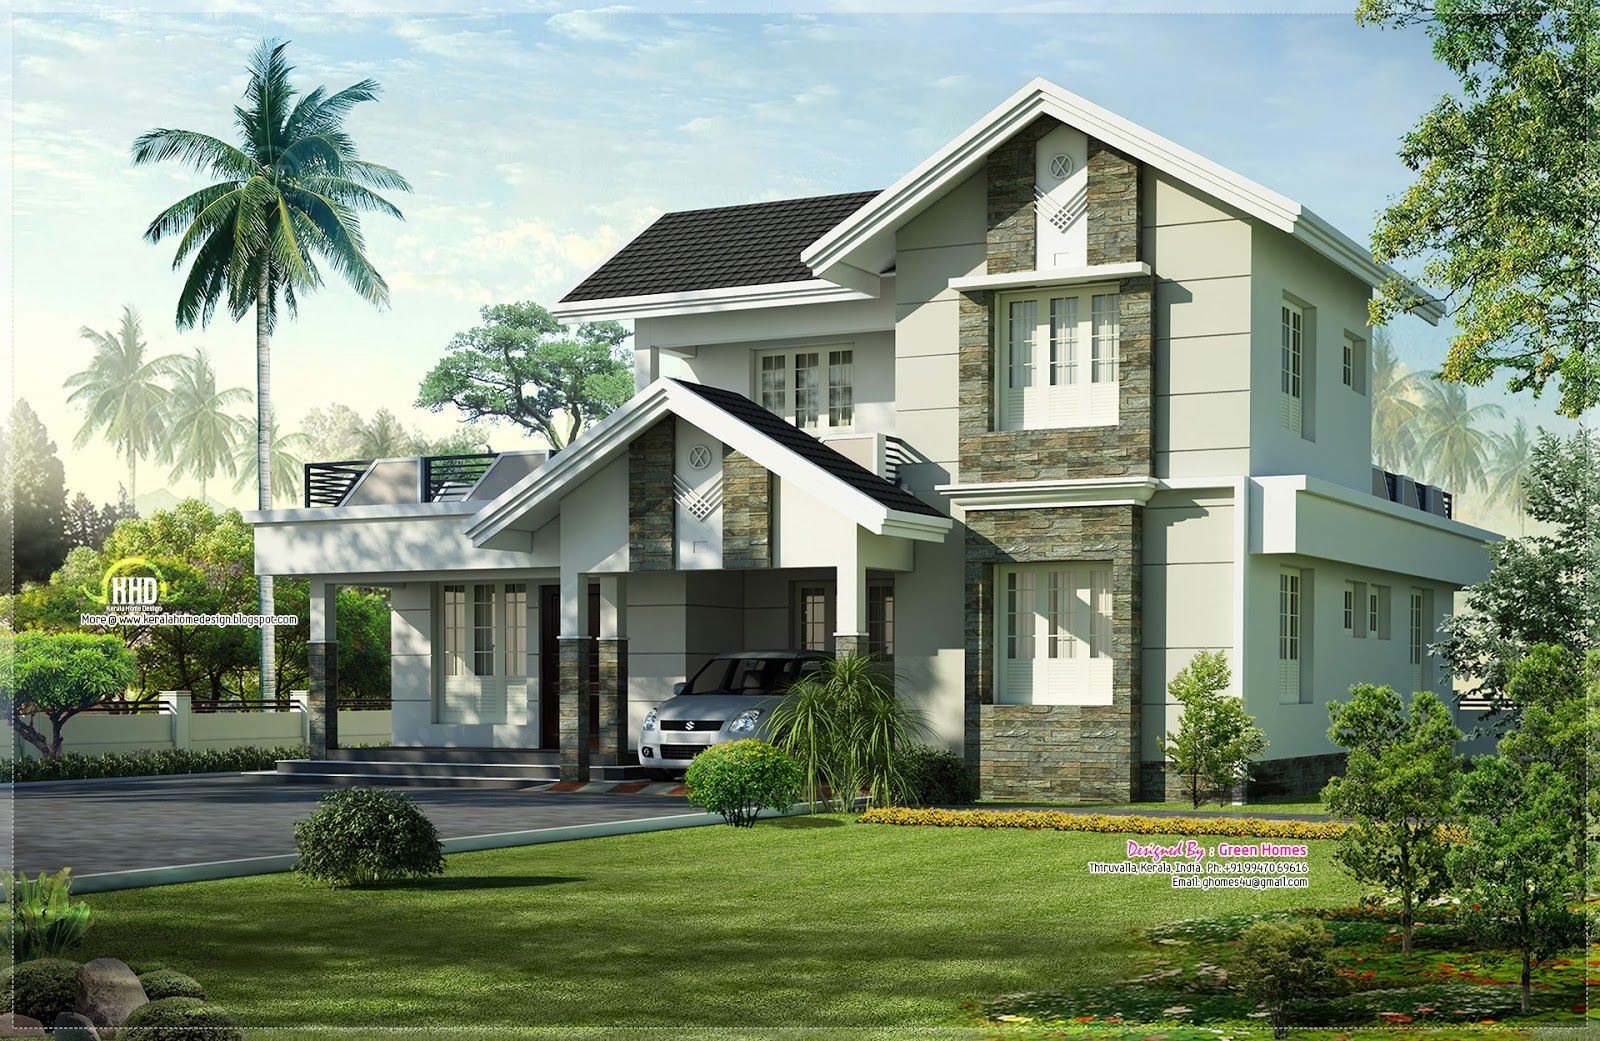 Beautiful house h ada googlom moje pinterest house nice houses and design floor plans - Kerala exterior model homes ...